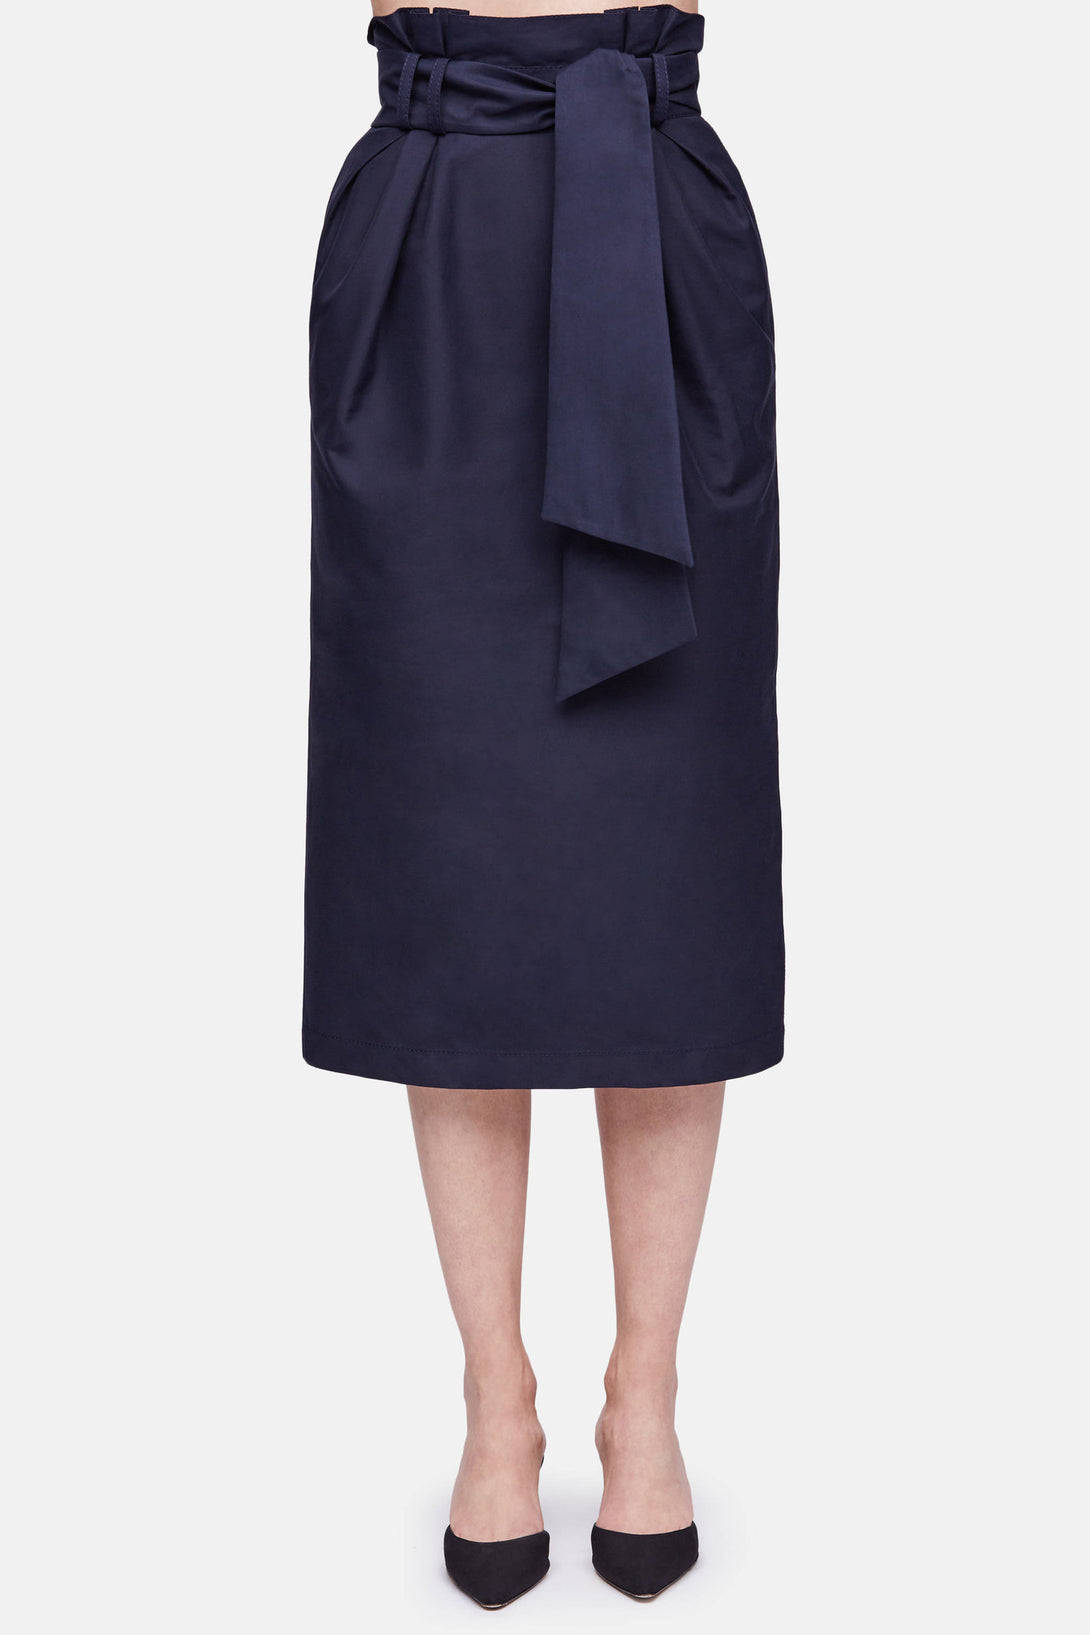 Jordan Paperbag Skirt - Navy